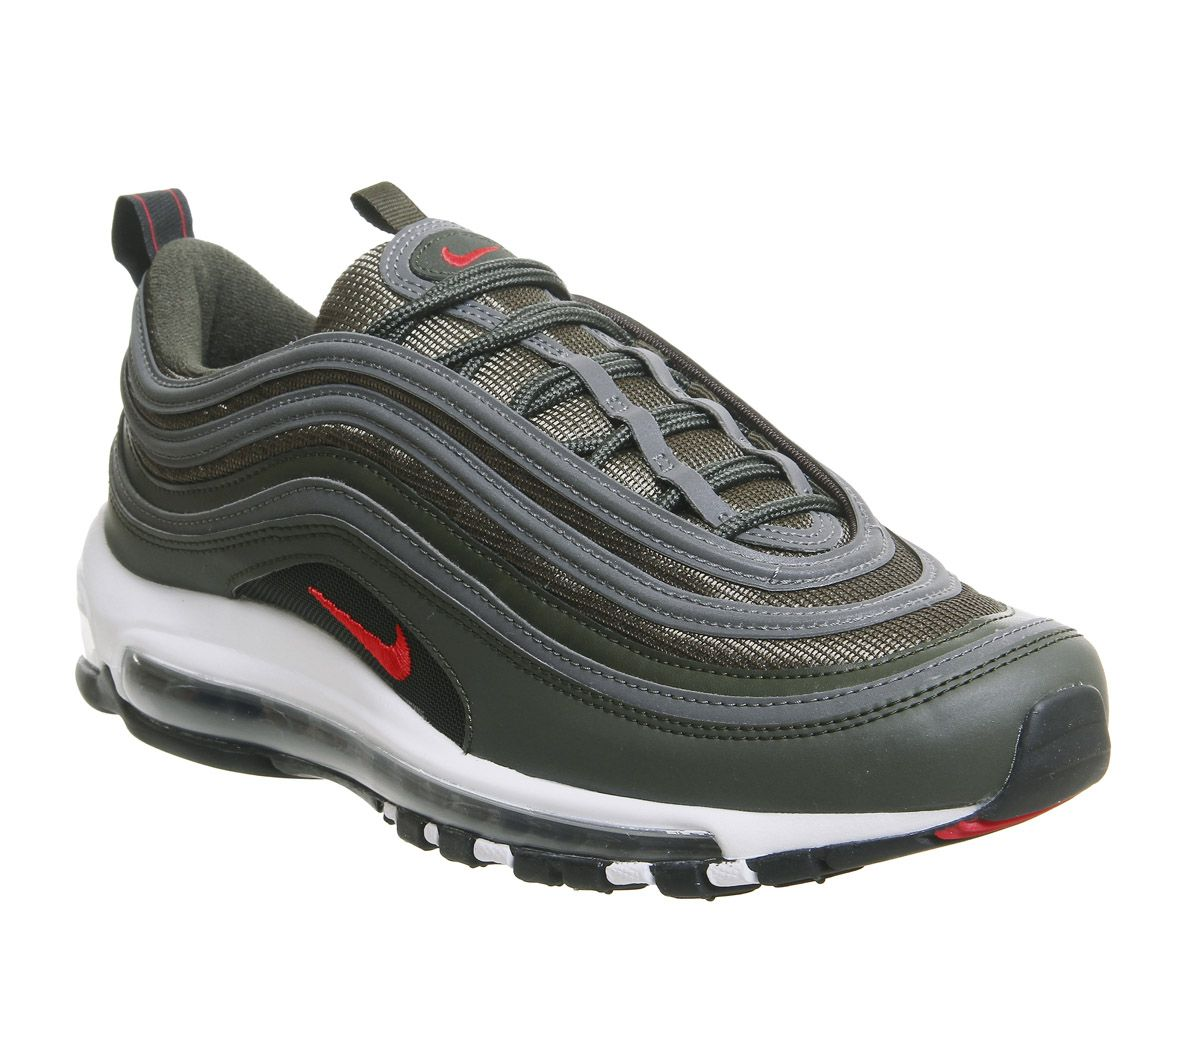 b0ed1bdd Nike Air Max 97 Trainers Sequoia University Red Metallic - Men's ...